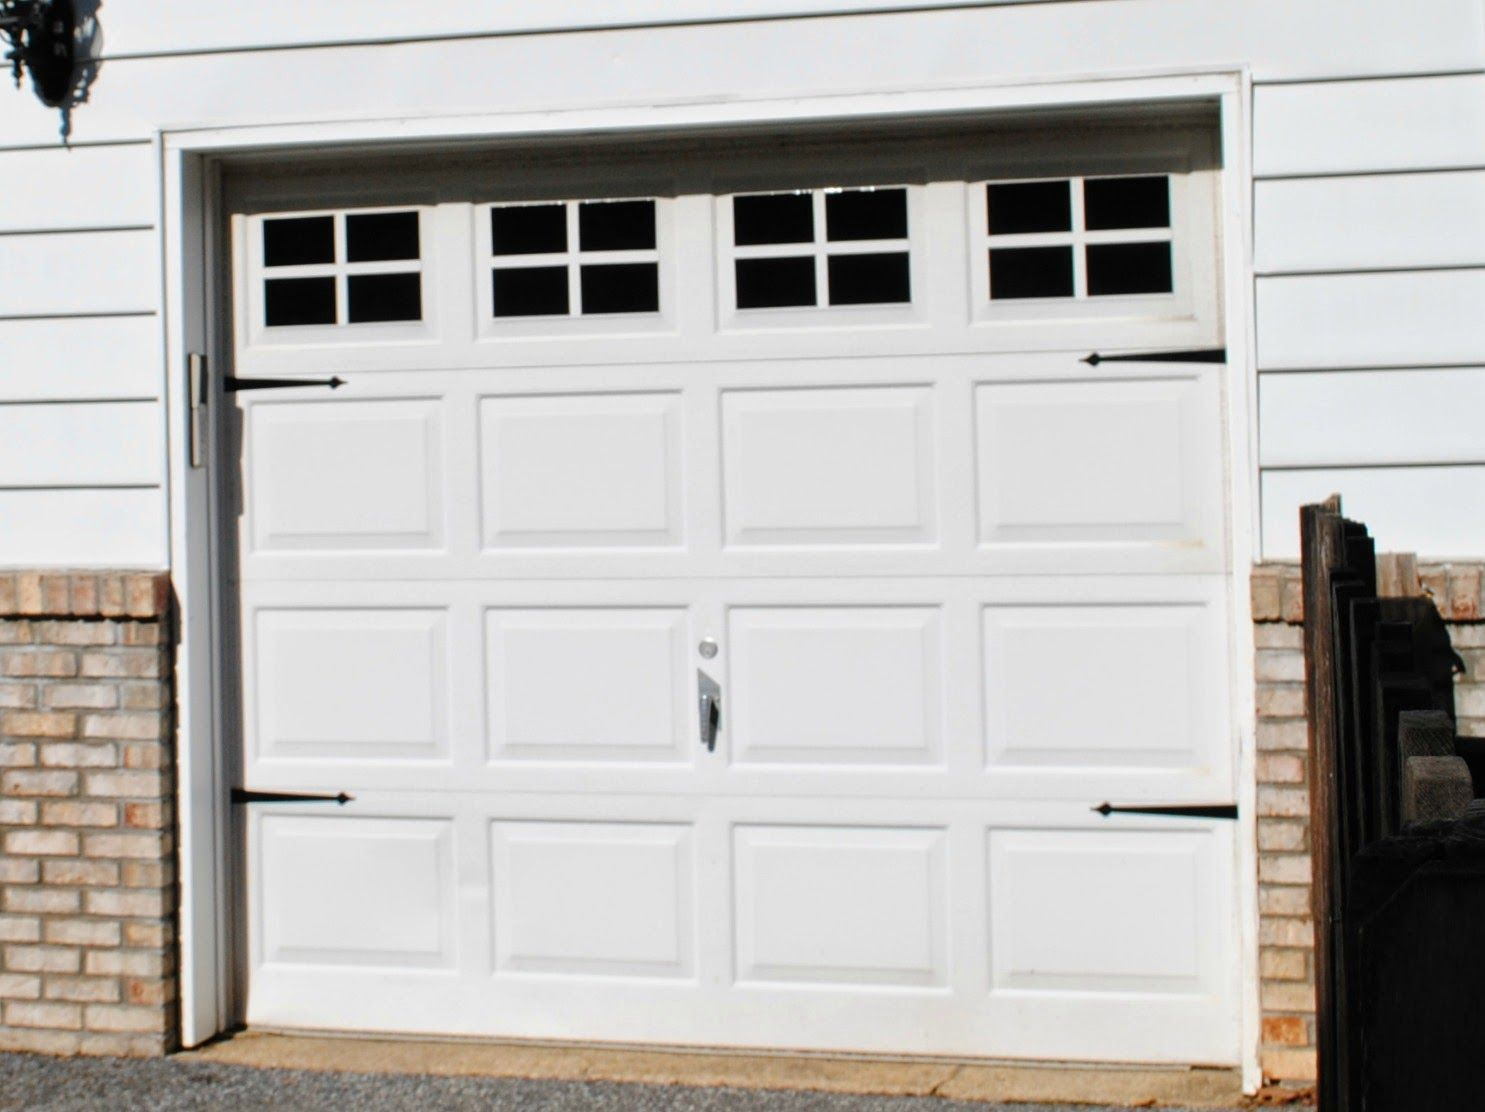 Pin By Becca Jane Hill On My House Garage Garage Doors Garage Door Windows Garage Door Design